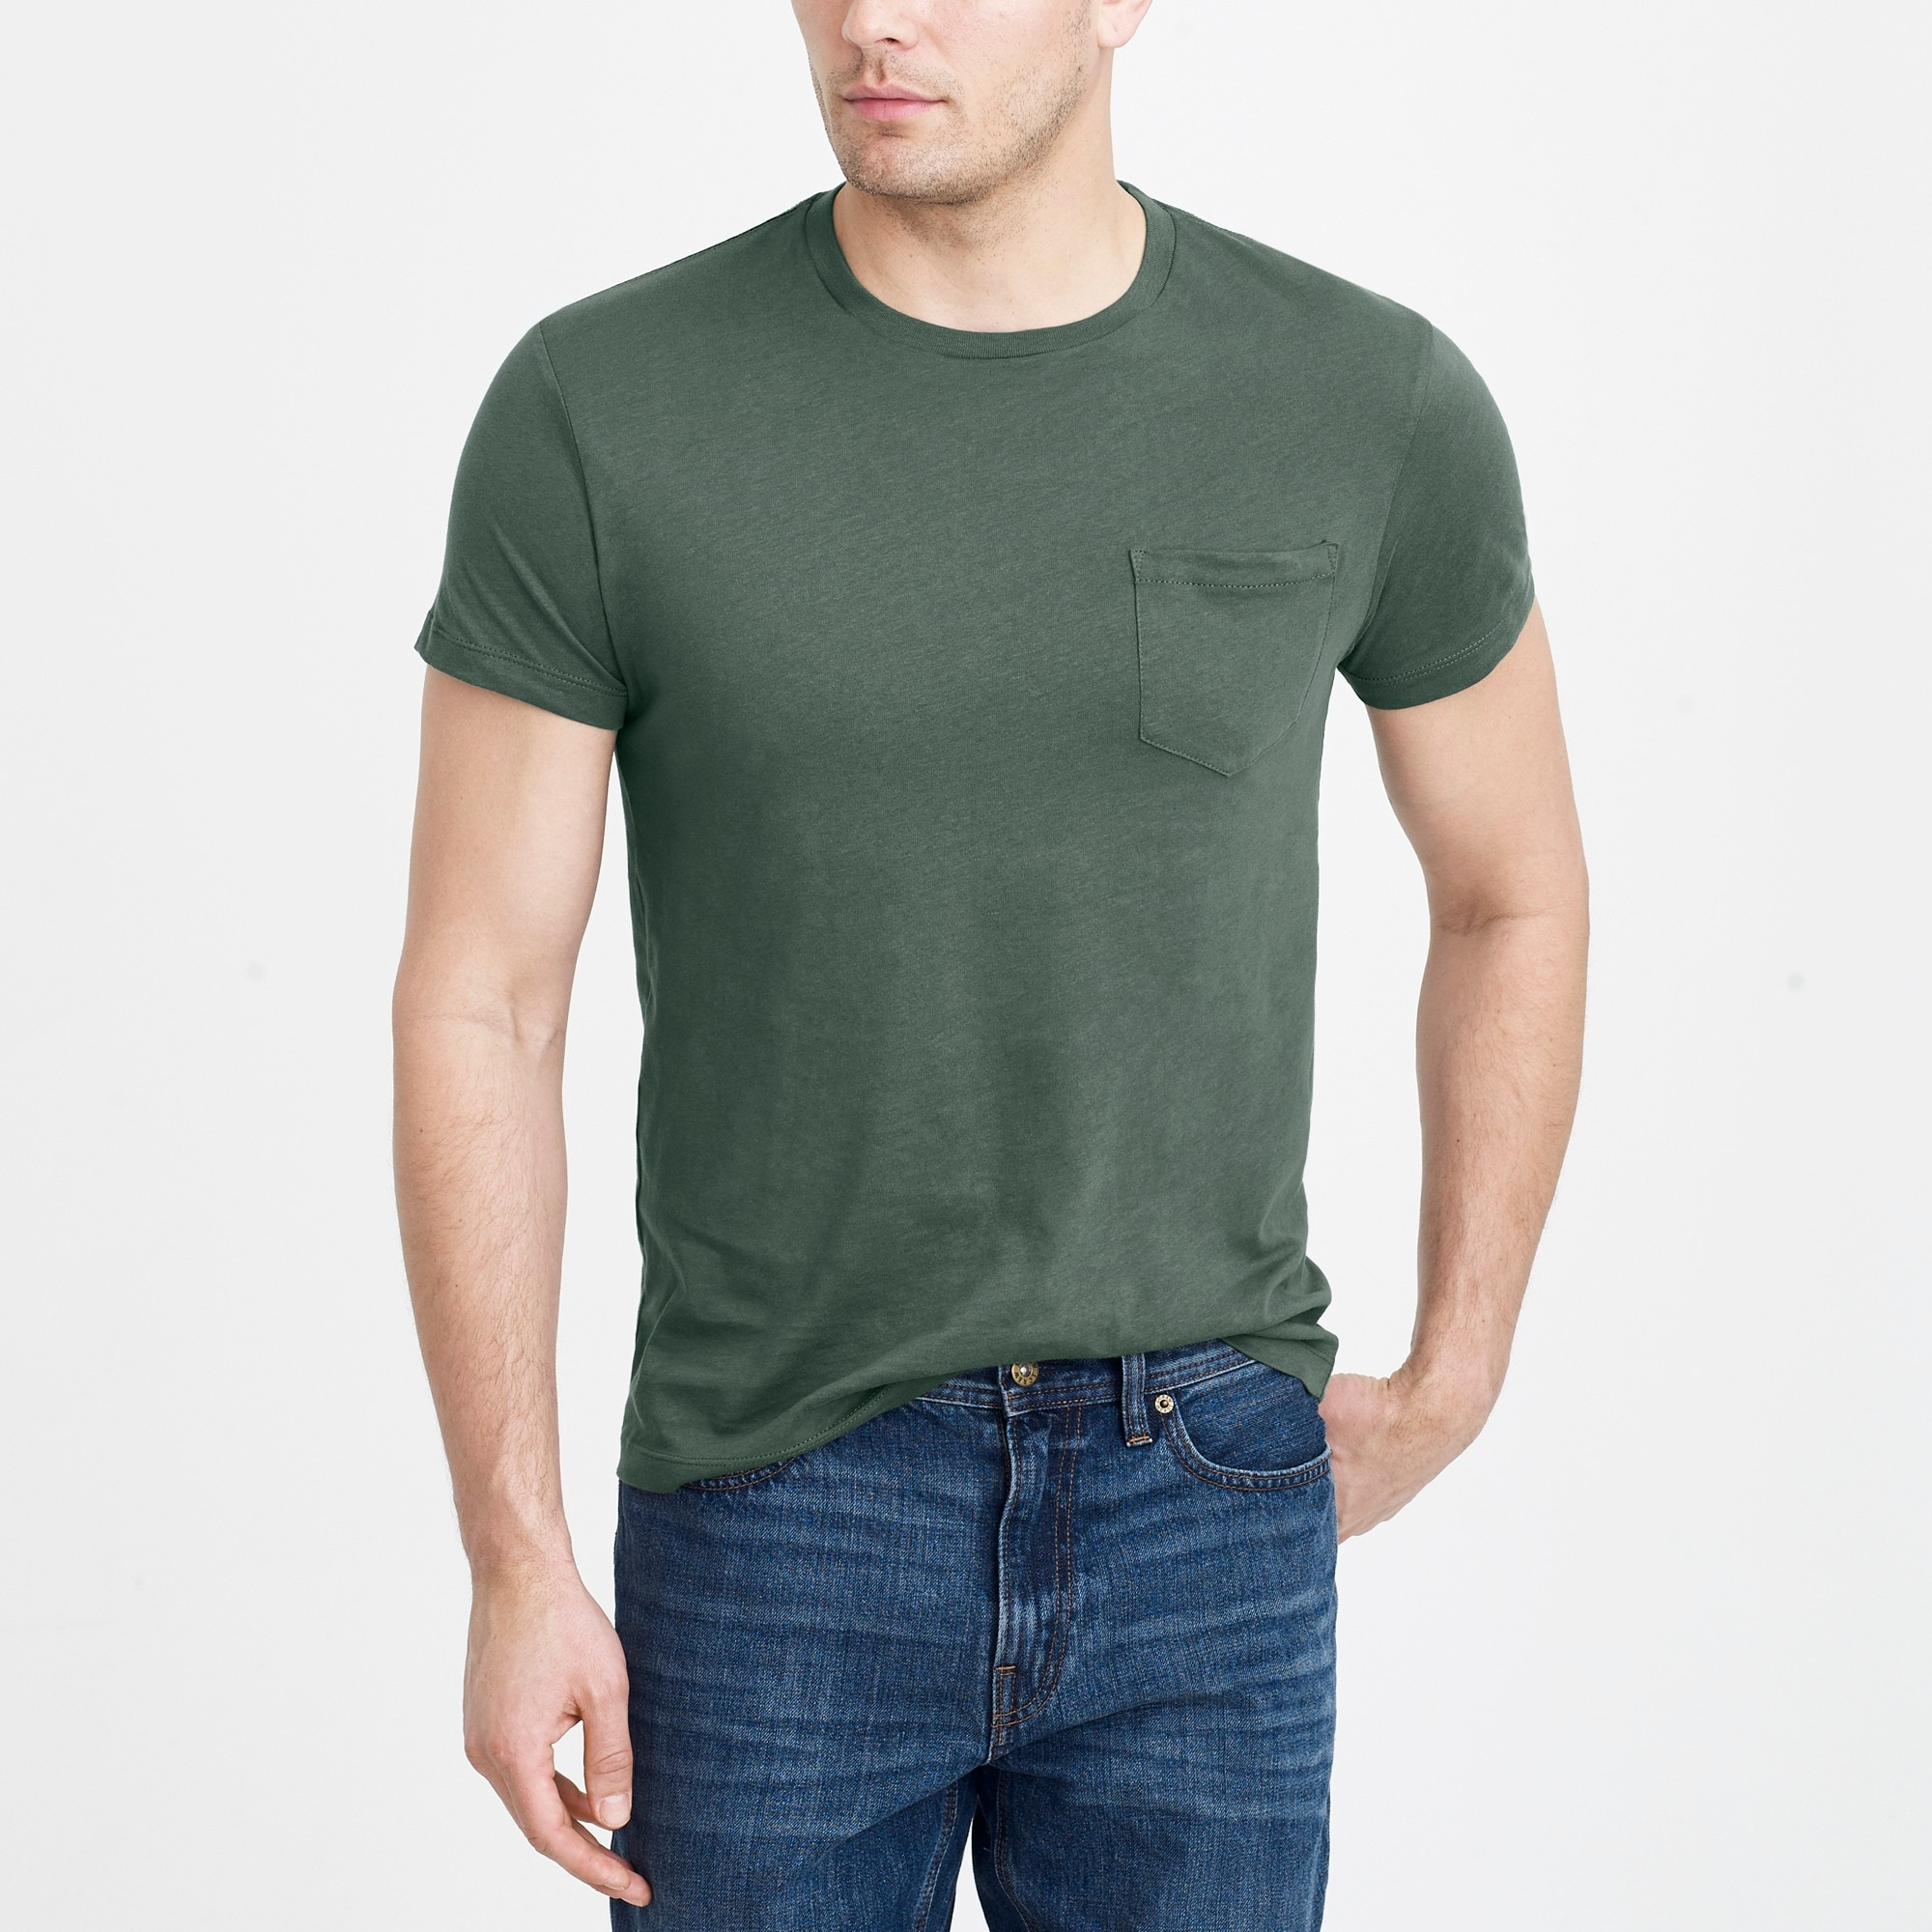 J.Crew Mercantile slim Broken-in pocket T-shirt factorymen t-shirts & henleys c